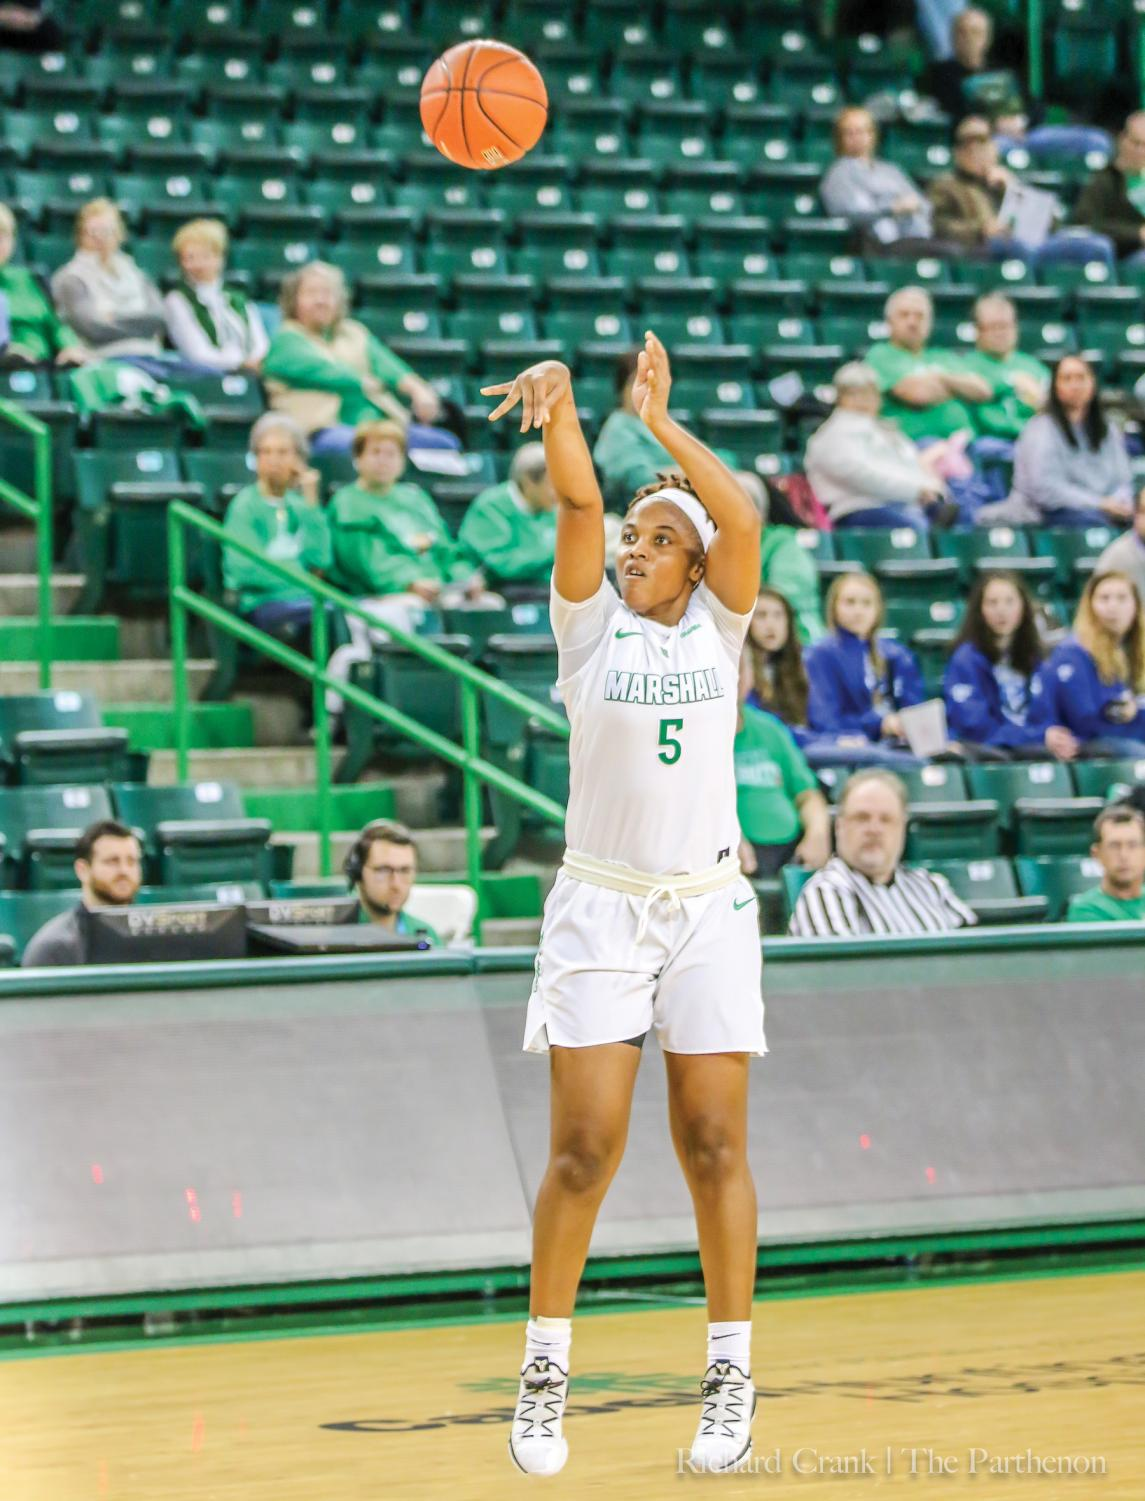 Marshall guard Princess Clemons (5) shoots a 3-pointer during the Thundering Herd's 90-88 triple-overtime win over Louisiana Tech. The Herd currently is in a tie for third place in Conference USA.